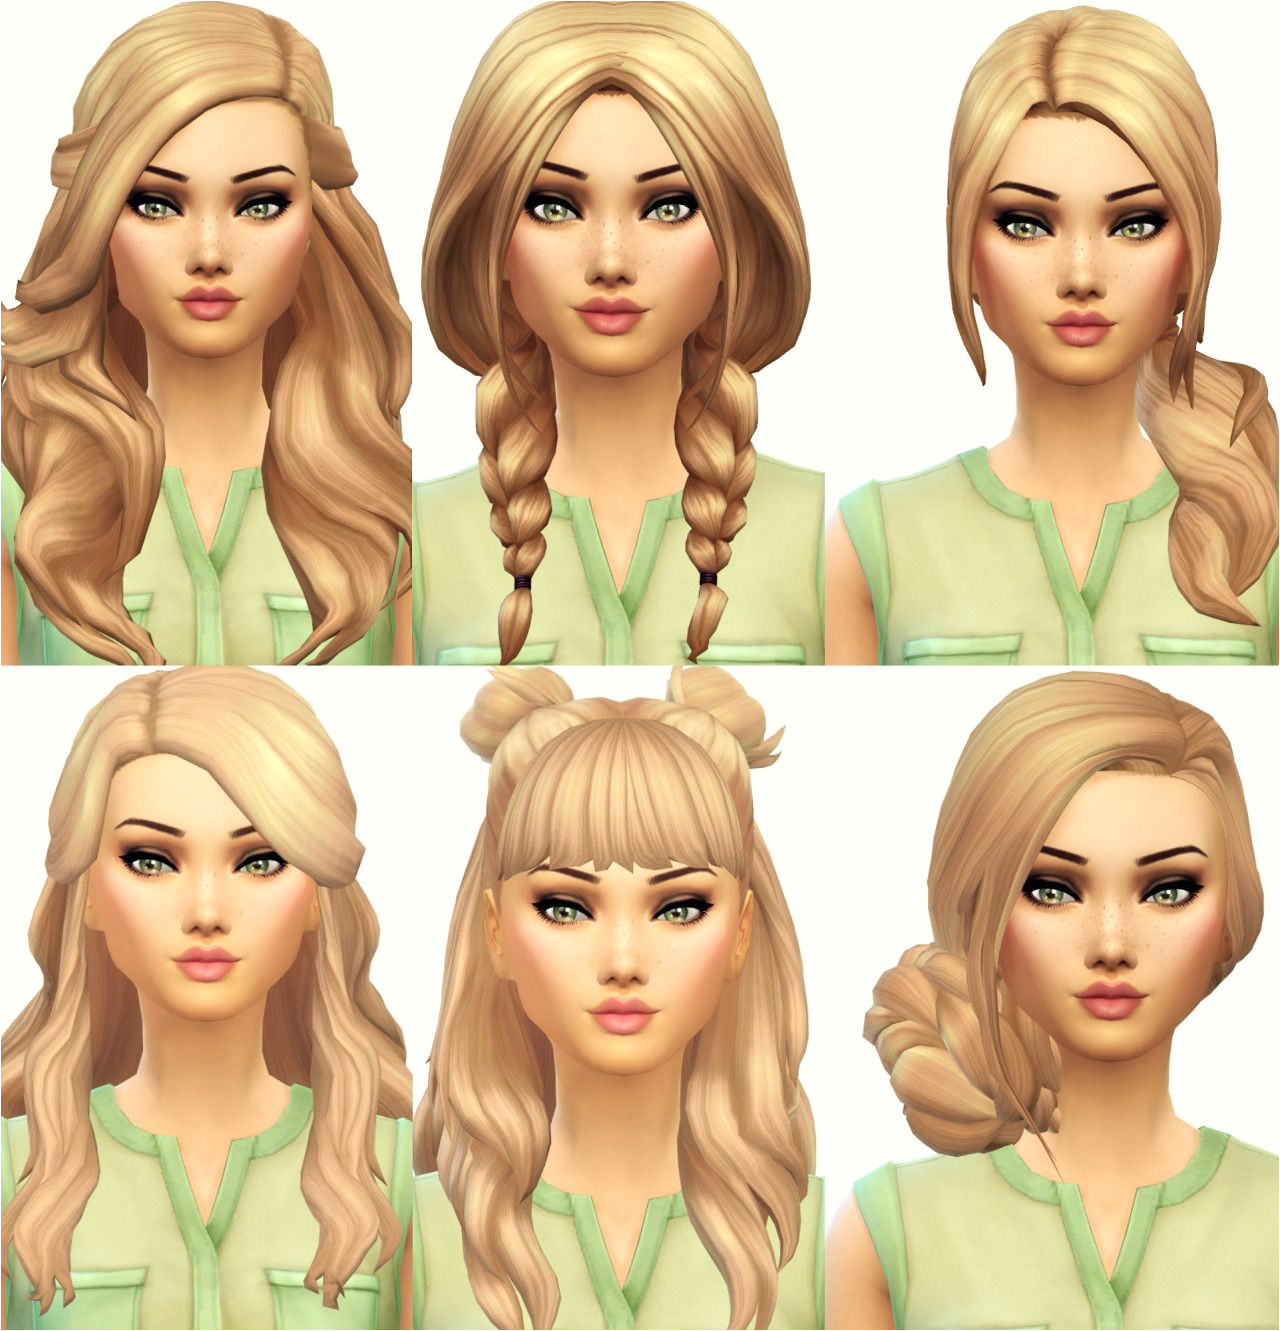 Current Favourite Maxis Match Hair From left to right then down and left to right again Hair 1 X by Wildspit Hair 2 X by PastelSims Hair 3 X by